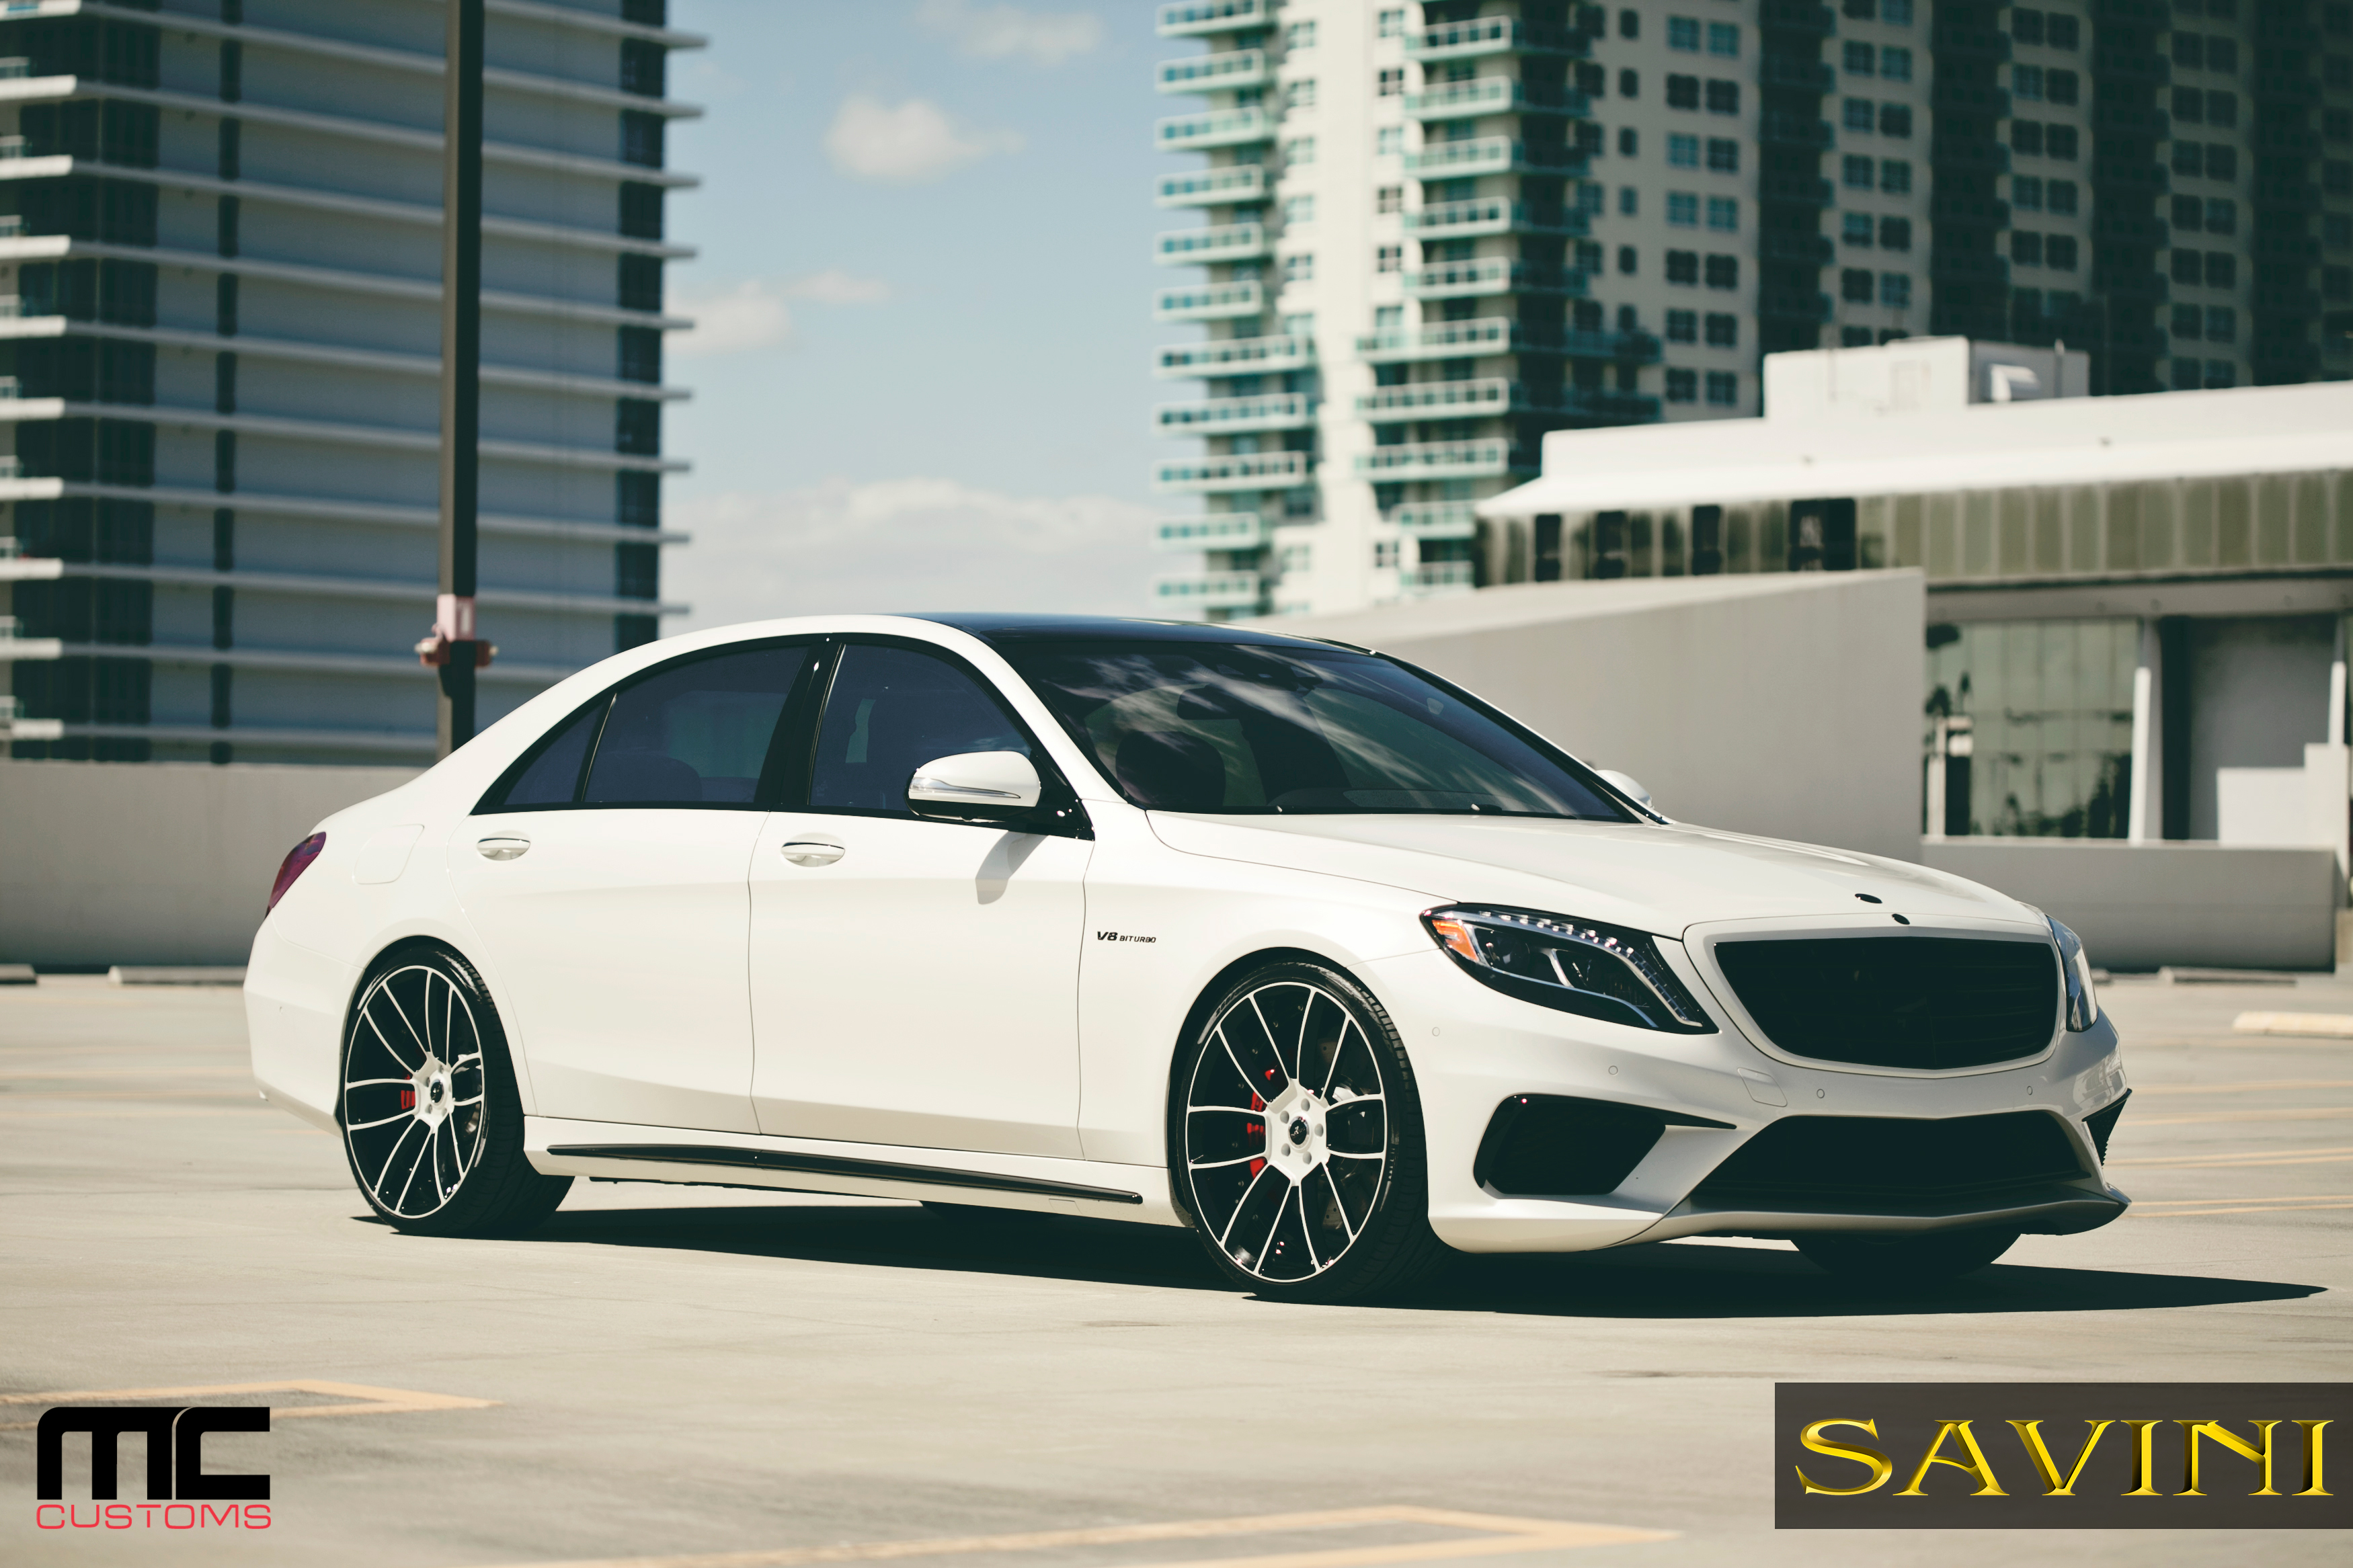 West Coast Customs Cars For Sale >> 2014 Mercedes Benz S63 AMG On 22-Inch Savini Wheels ...